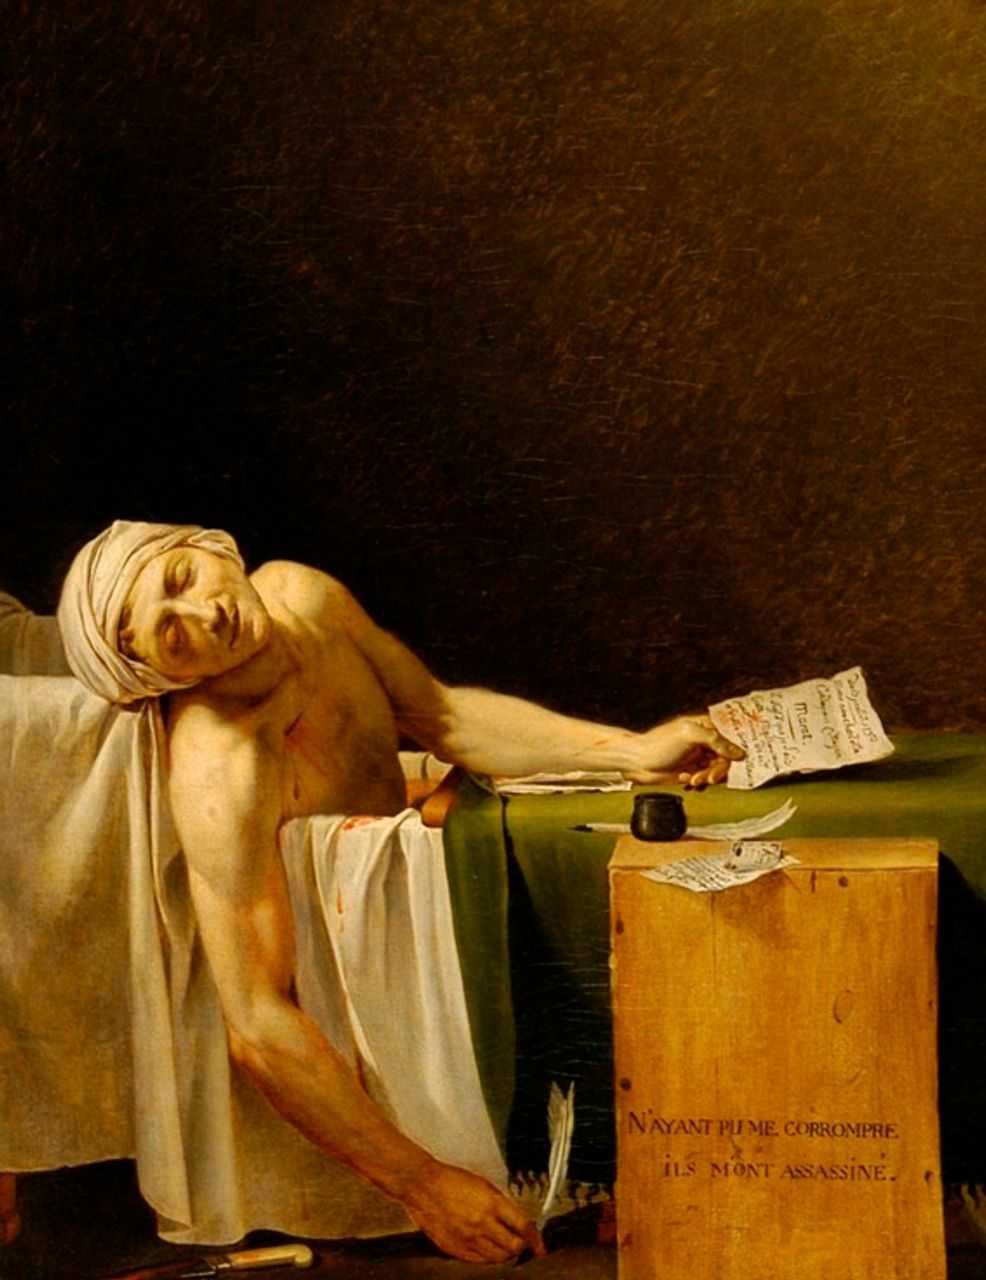 Jacques-Louis David, The Death of Marat 1793 © Musée des Beaux-Arts. Photo: C.Devleeschauwer